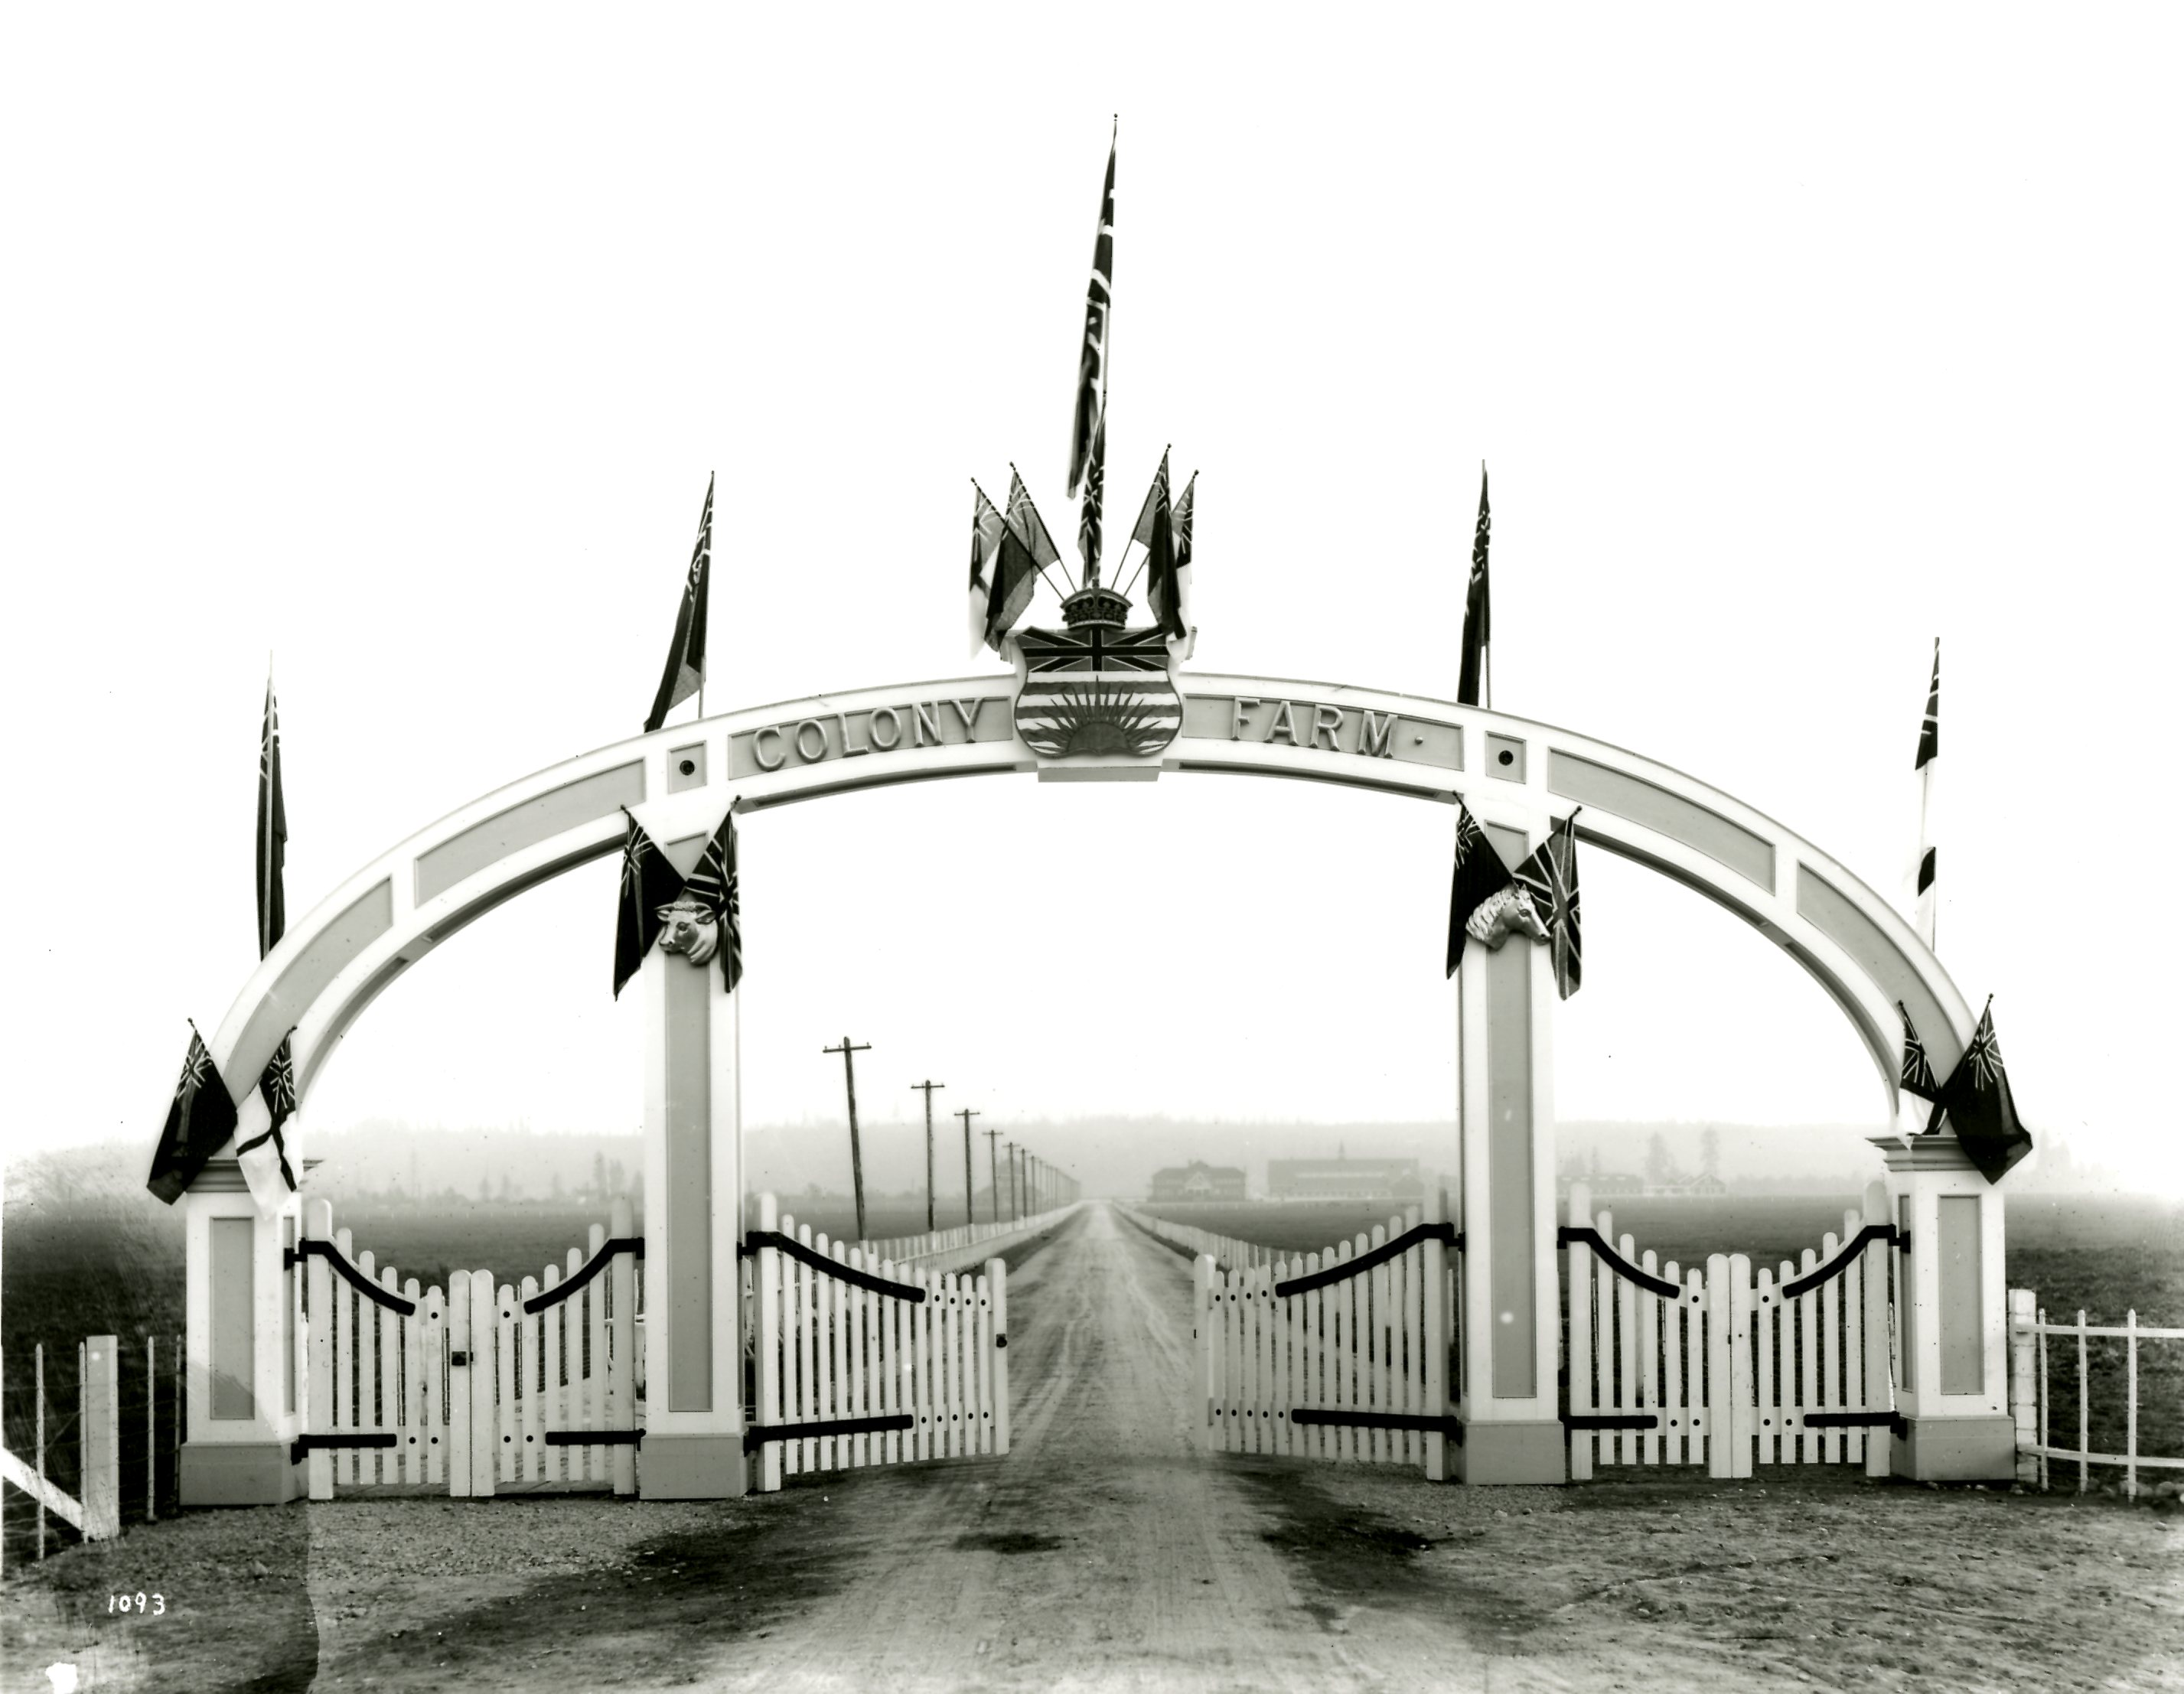 Entrance Arch of Colony Farm, Circa 1912 (JPG) Opens in new window